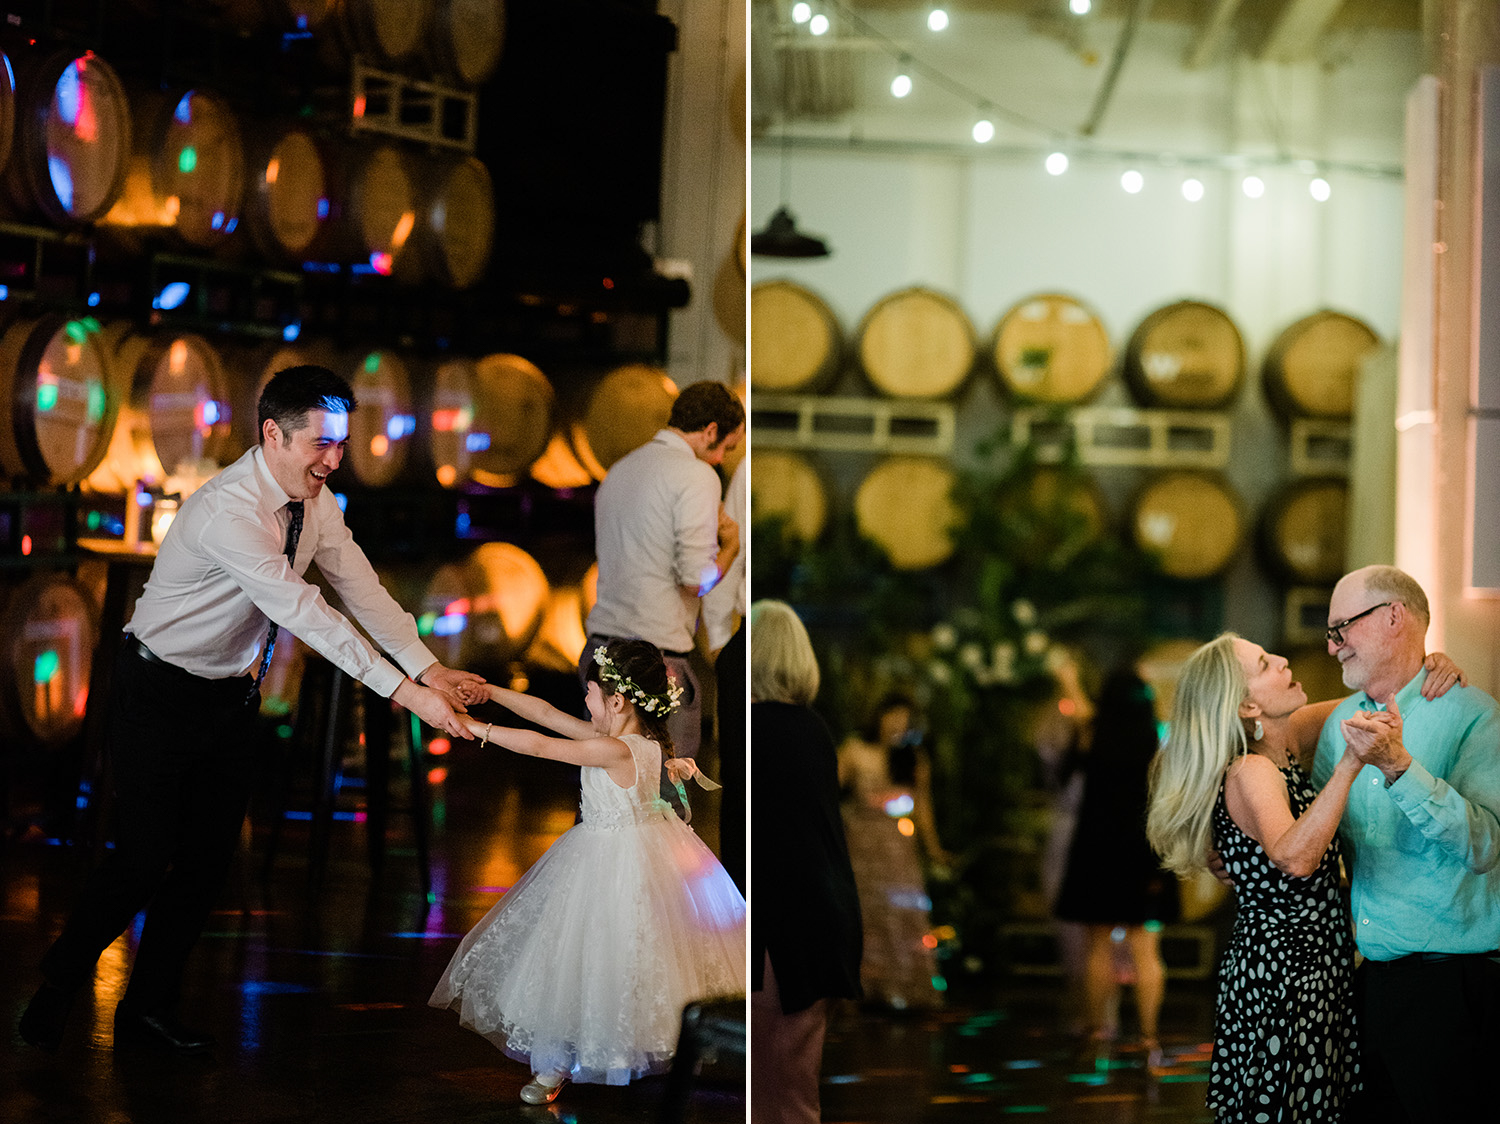 Potrero_Hill_Wine_Works_Wedding_ChristinaRichards_095.jpg